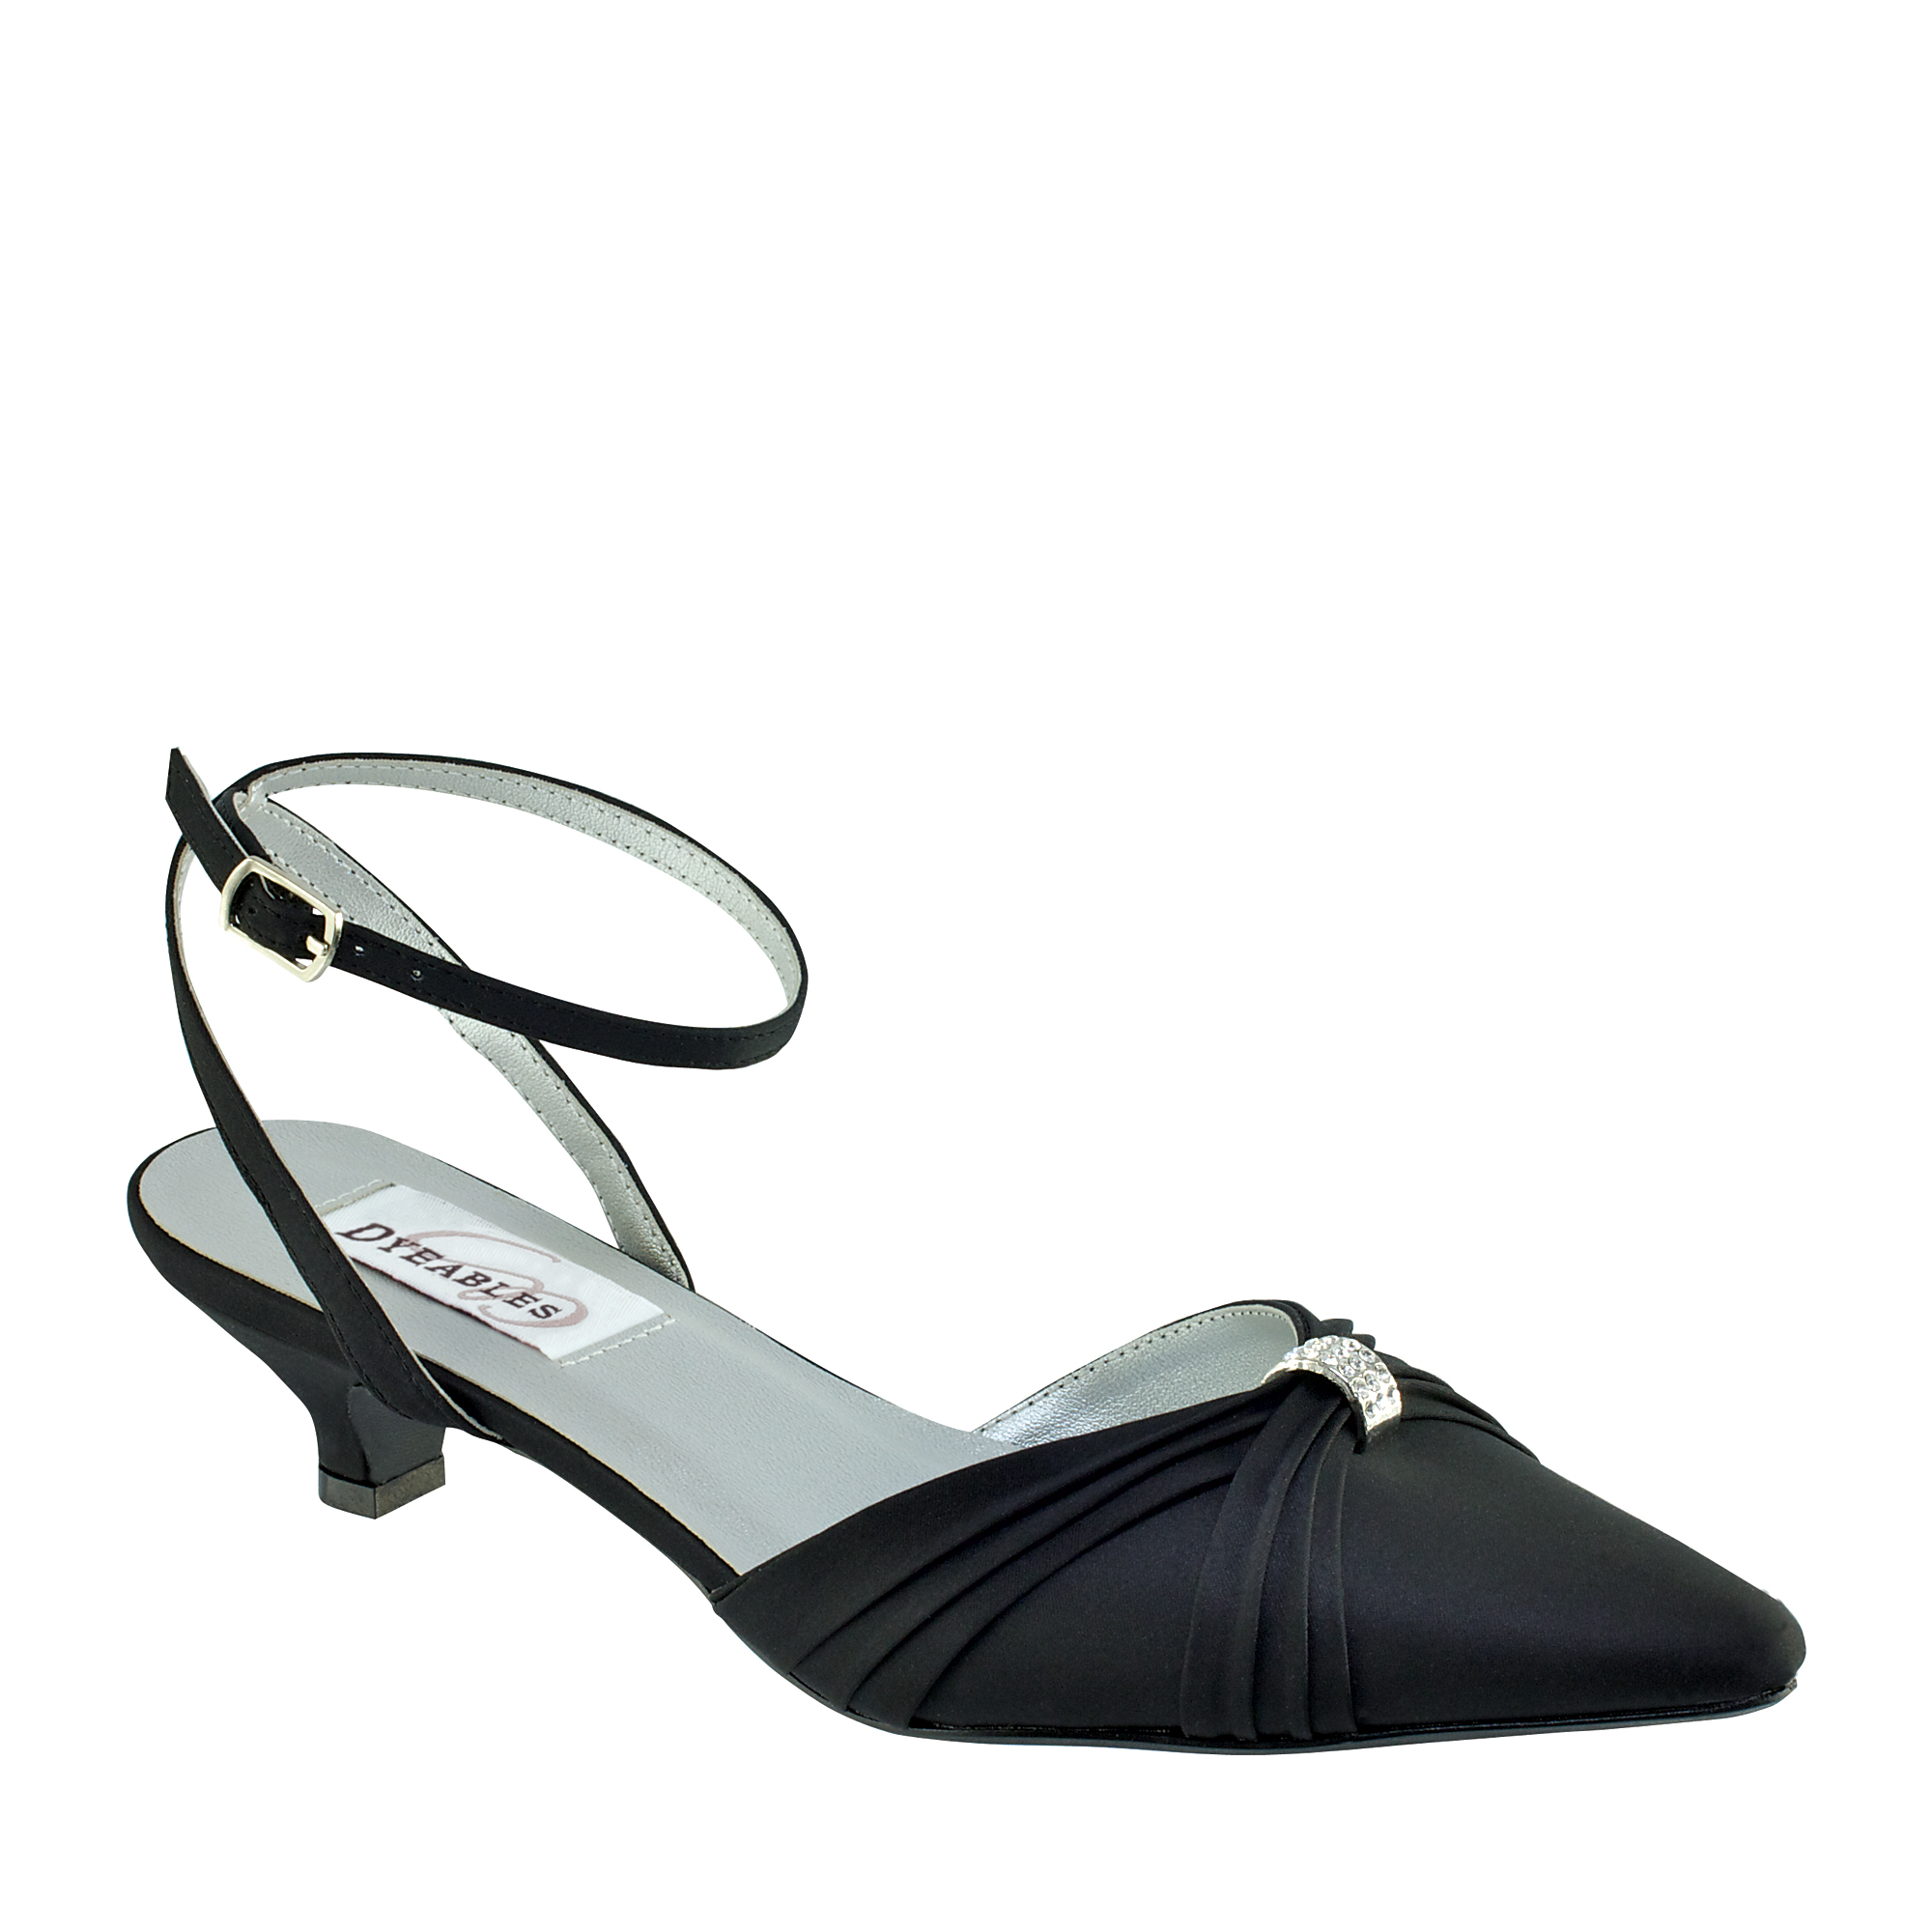 How To Dye Satin Shoes Black